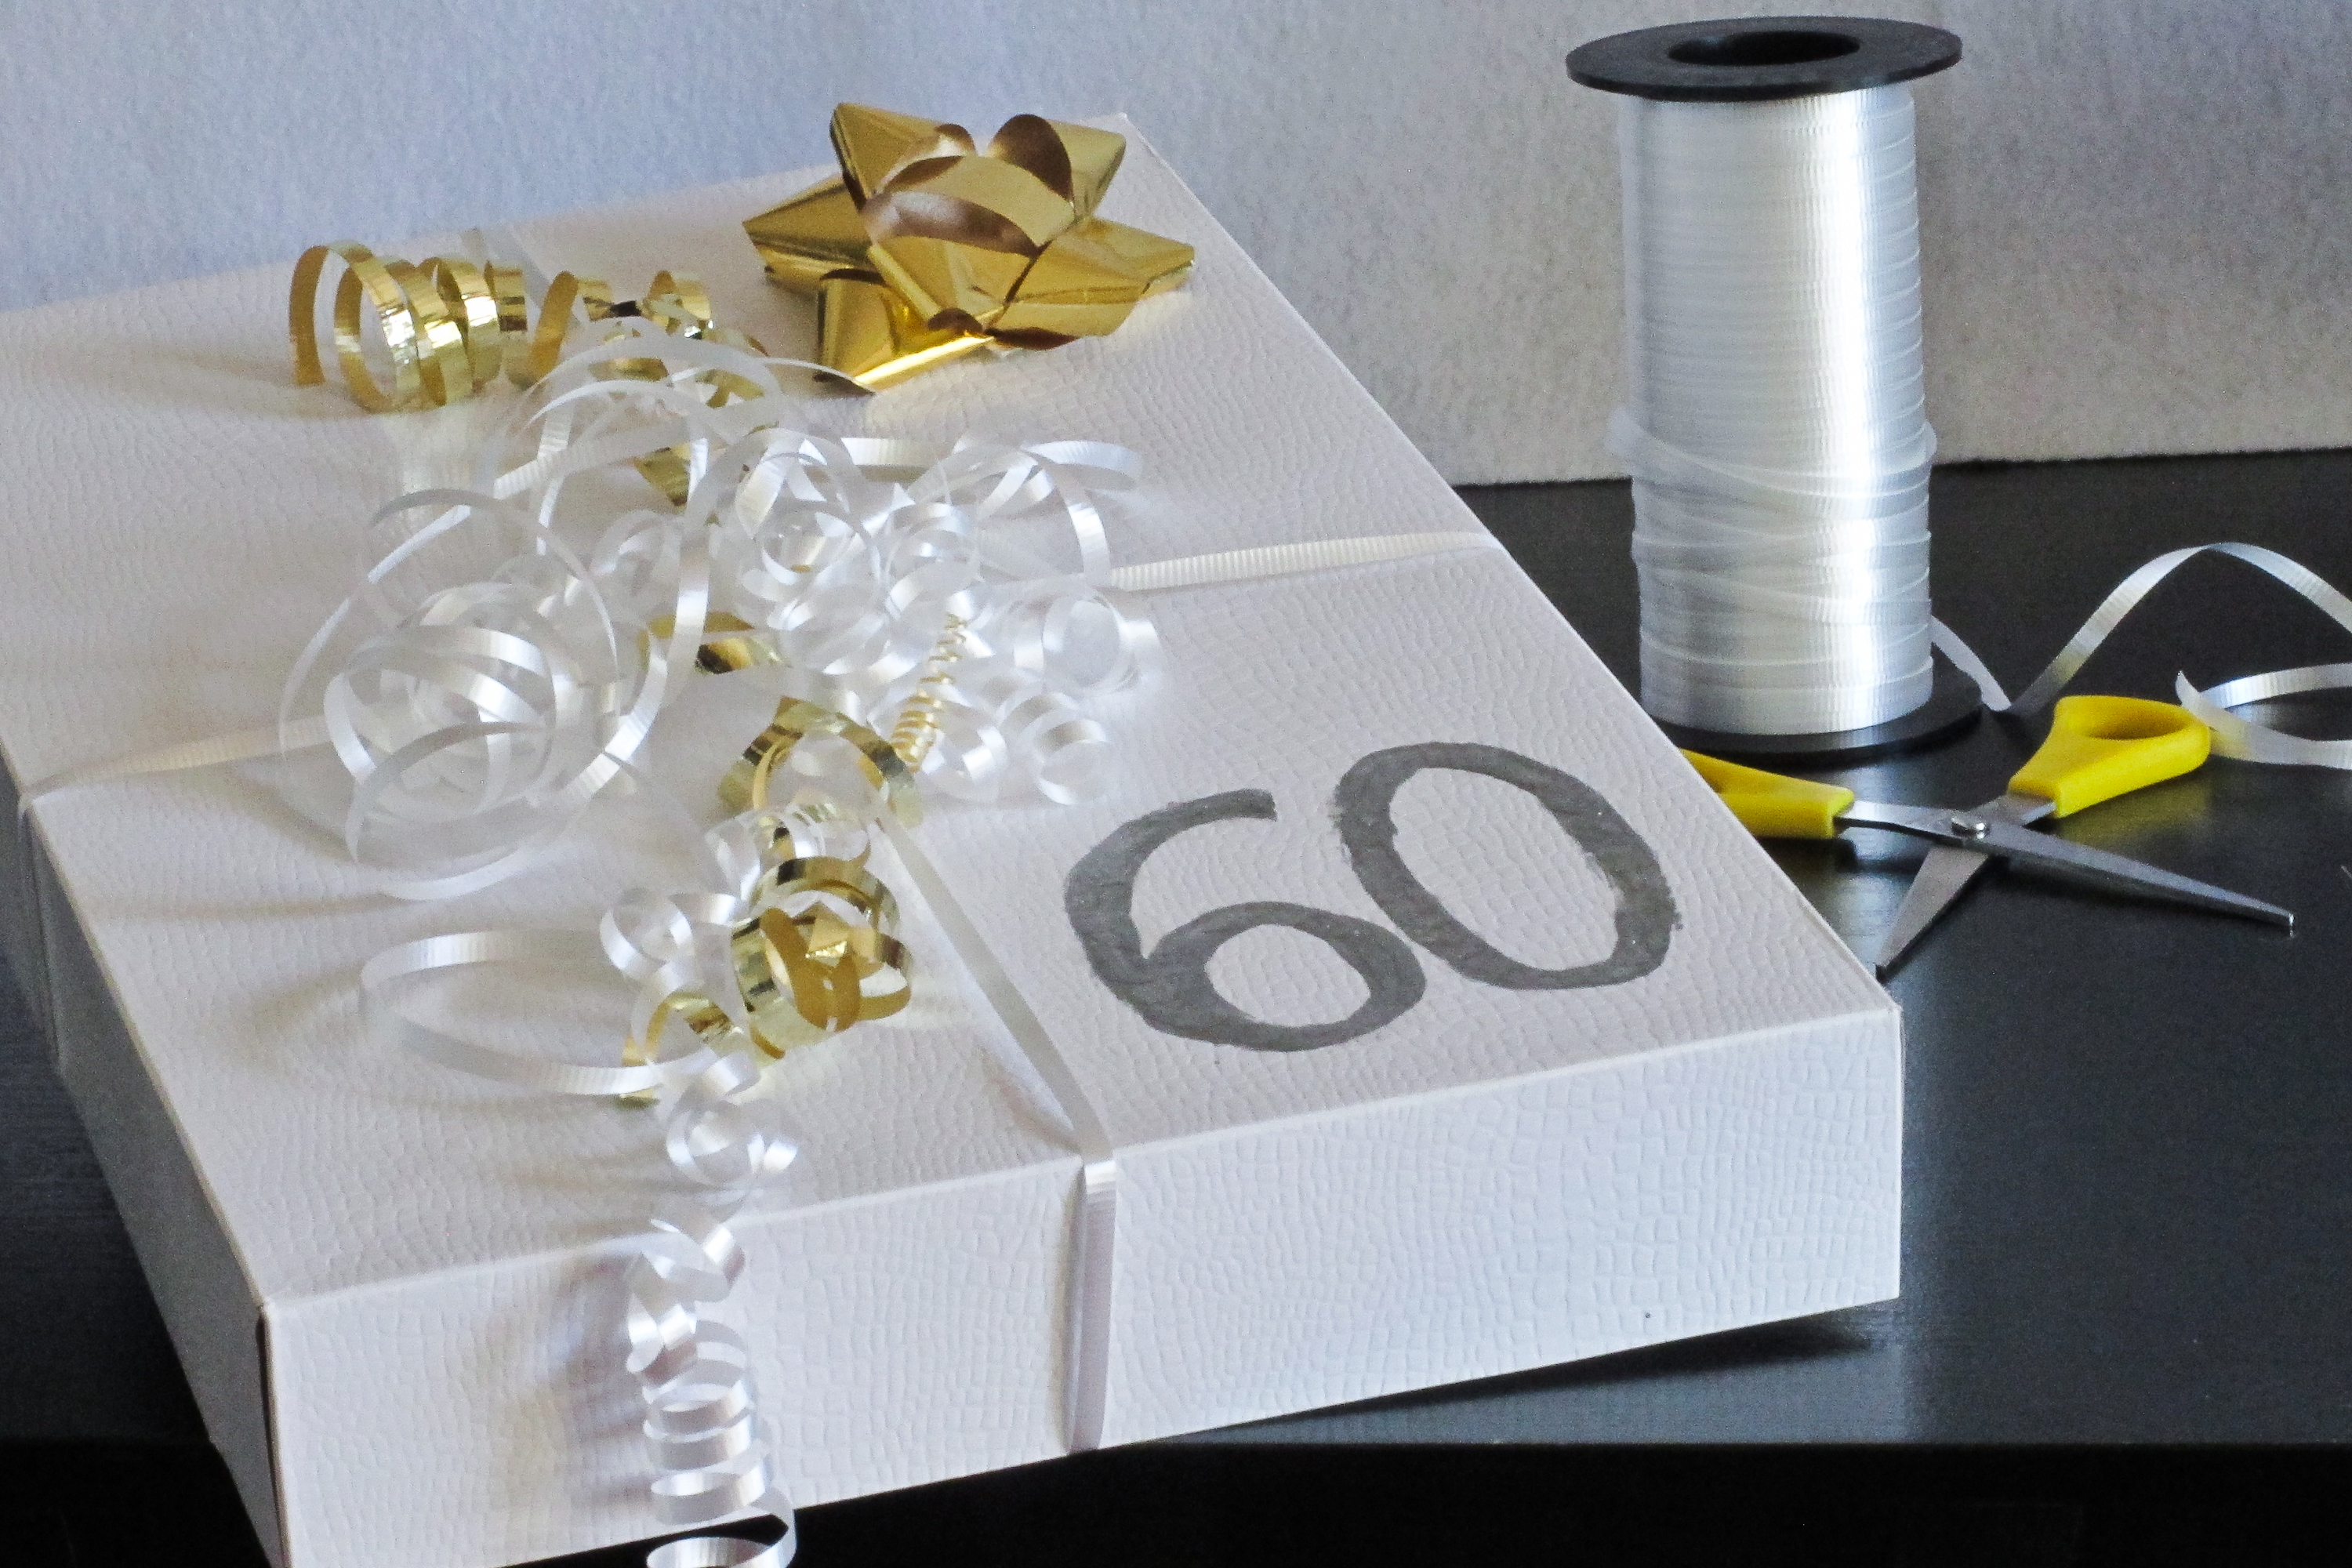 Silver Wedding Anniversary Gifts For Parents: 60th Wedding Anniversary Gifts For Parents